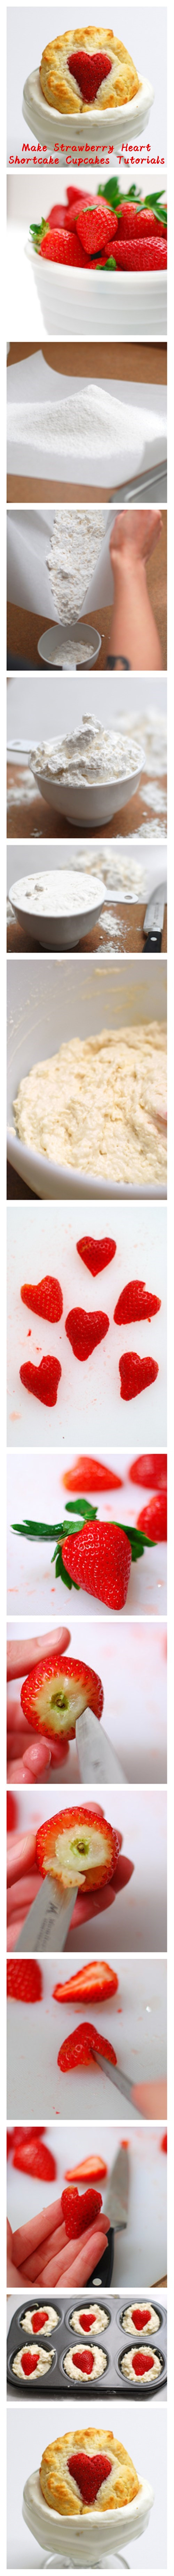 Make #Strawberry #Heart #Shortcake #Cupcakes #Tutorials